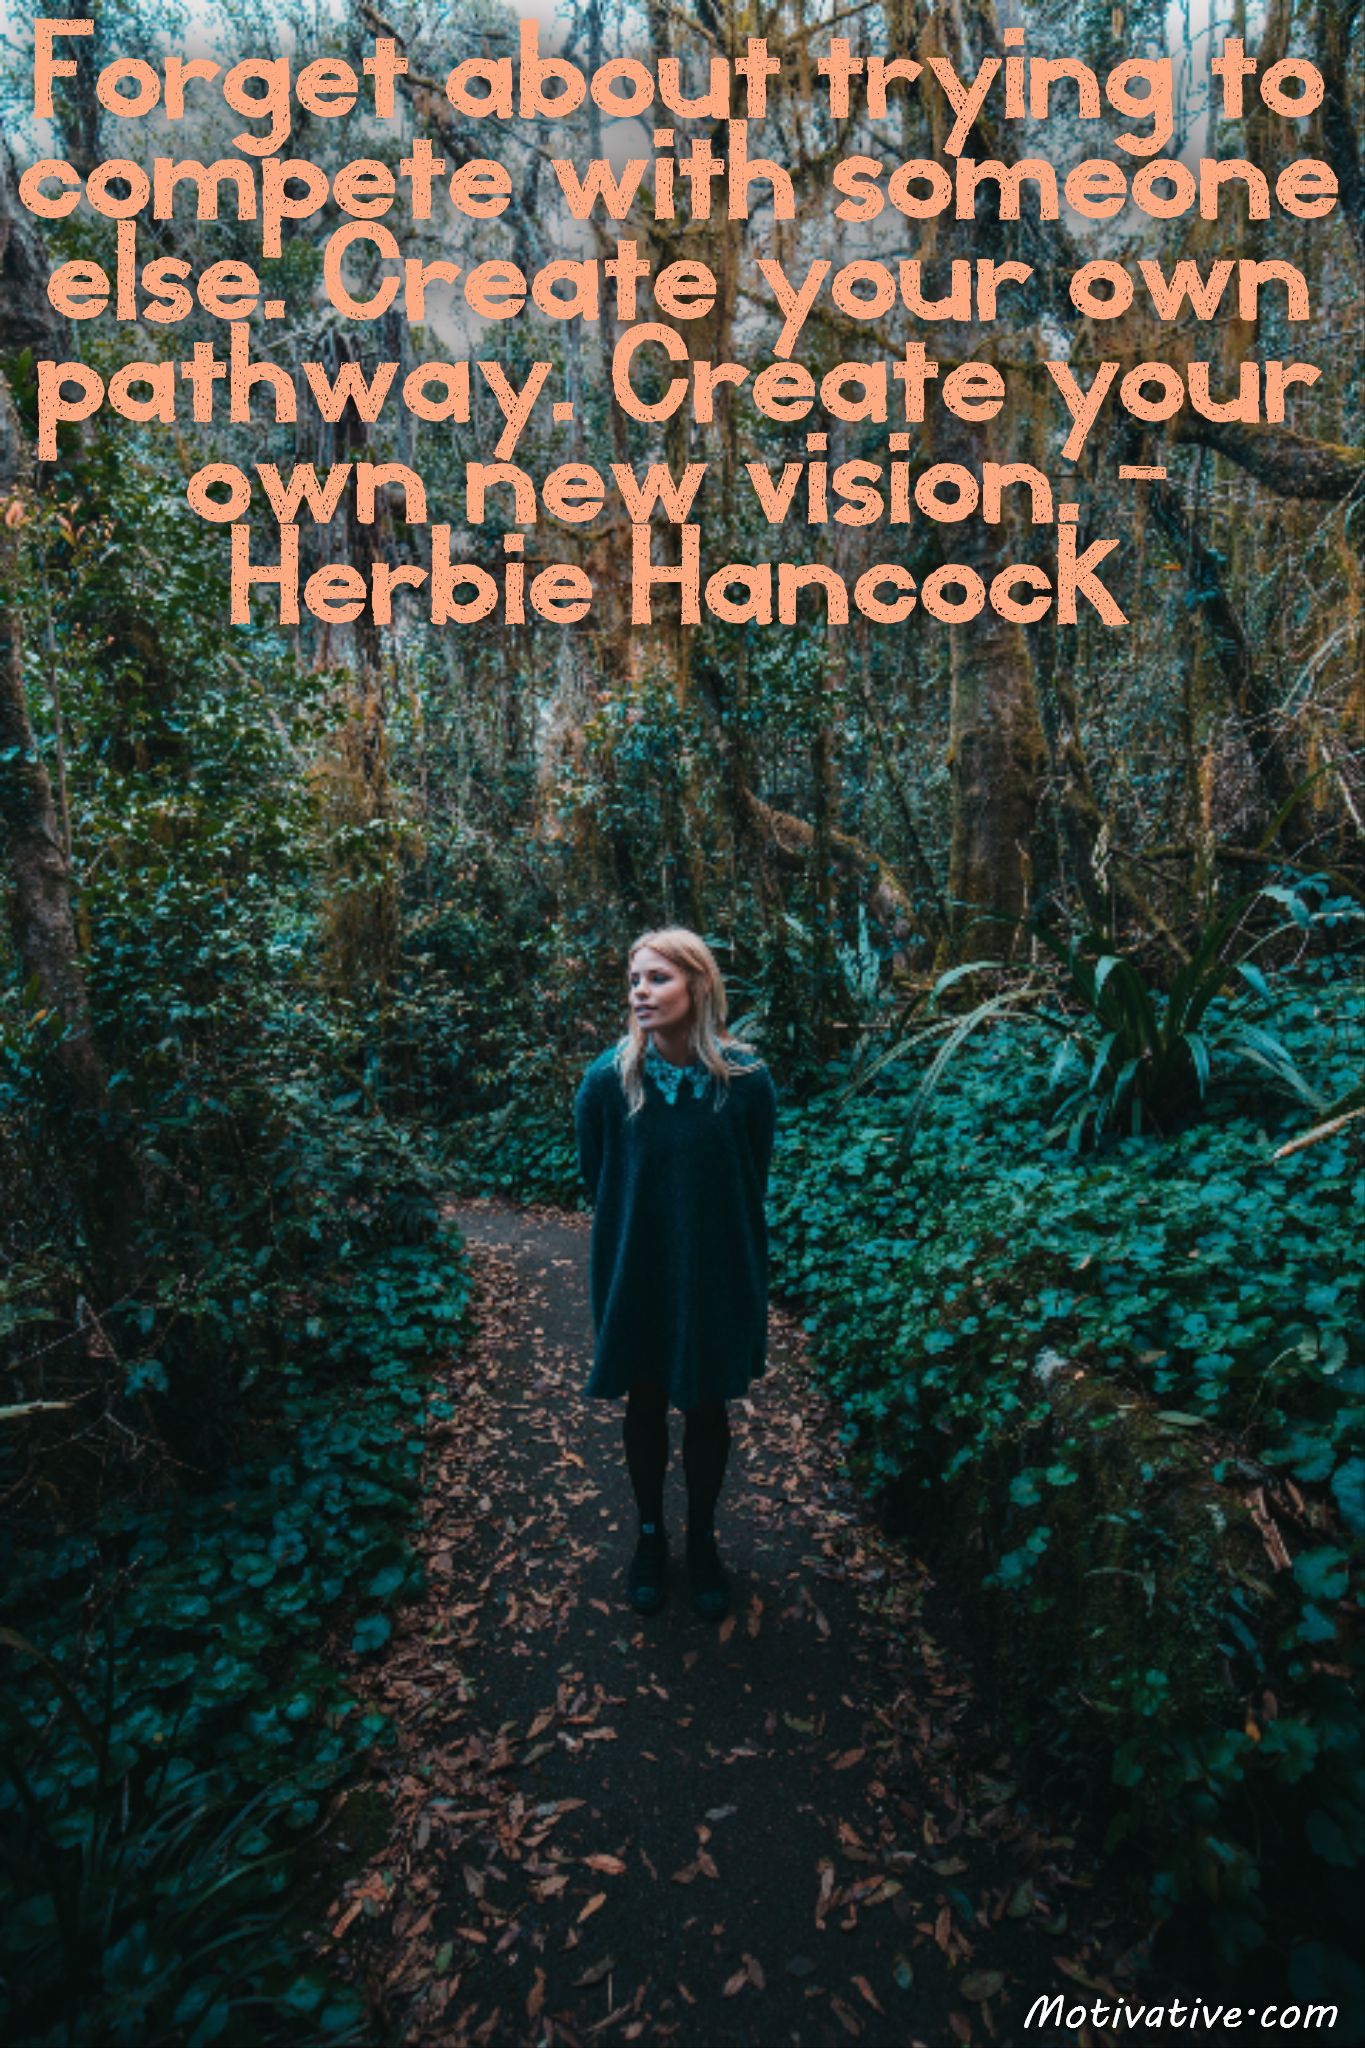 Forget about trying to compete with someone else. Create your own pathway. Create your own new vision. – Herbie Hancock